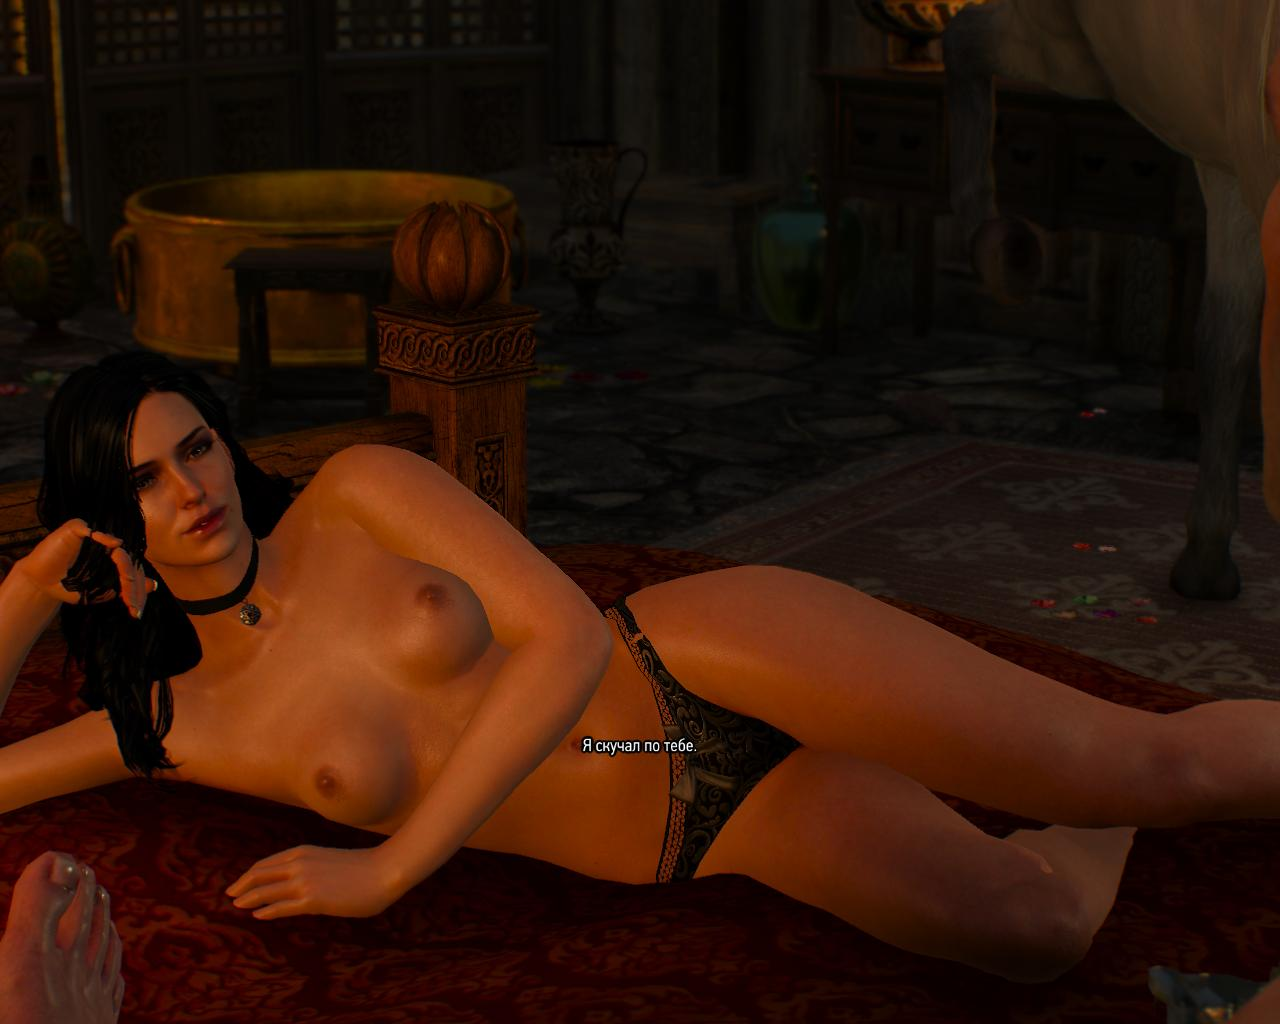 Witcher 3 sex video naked clip